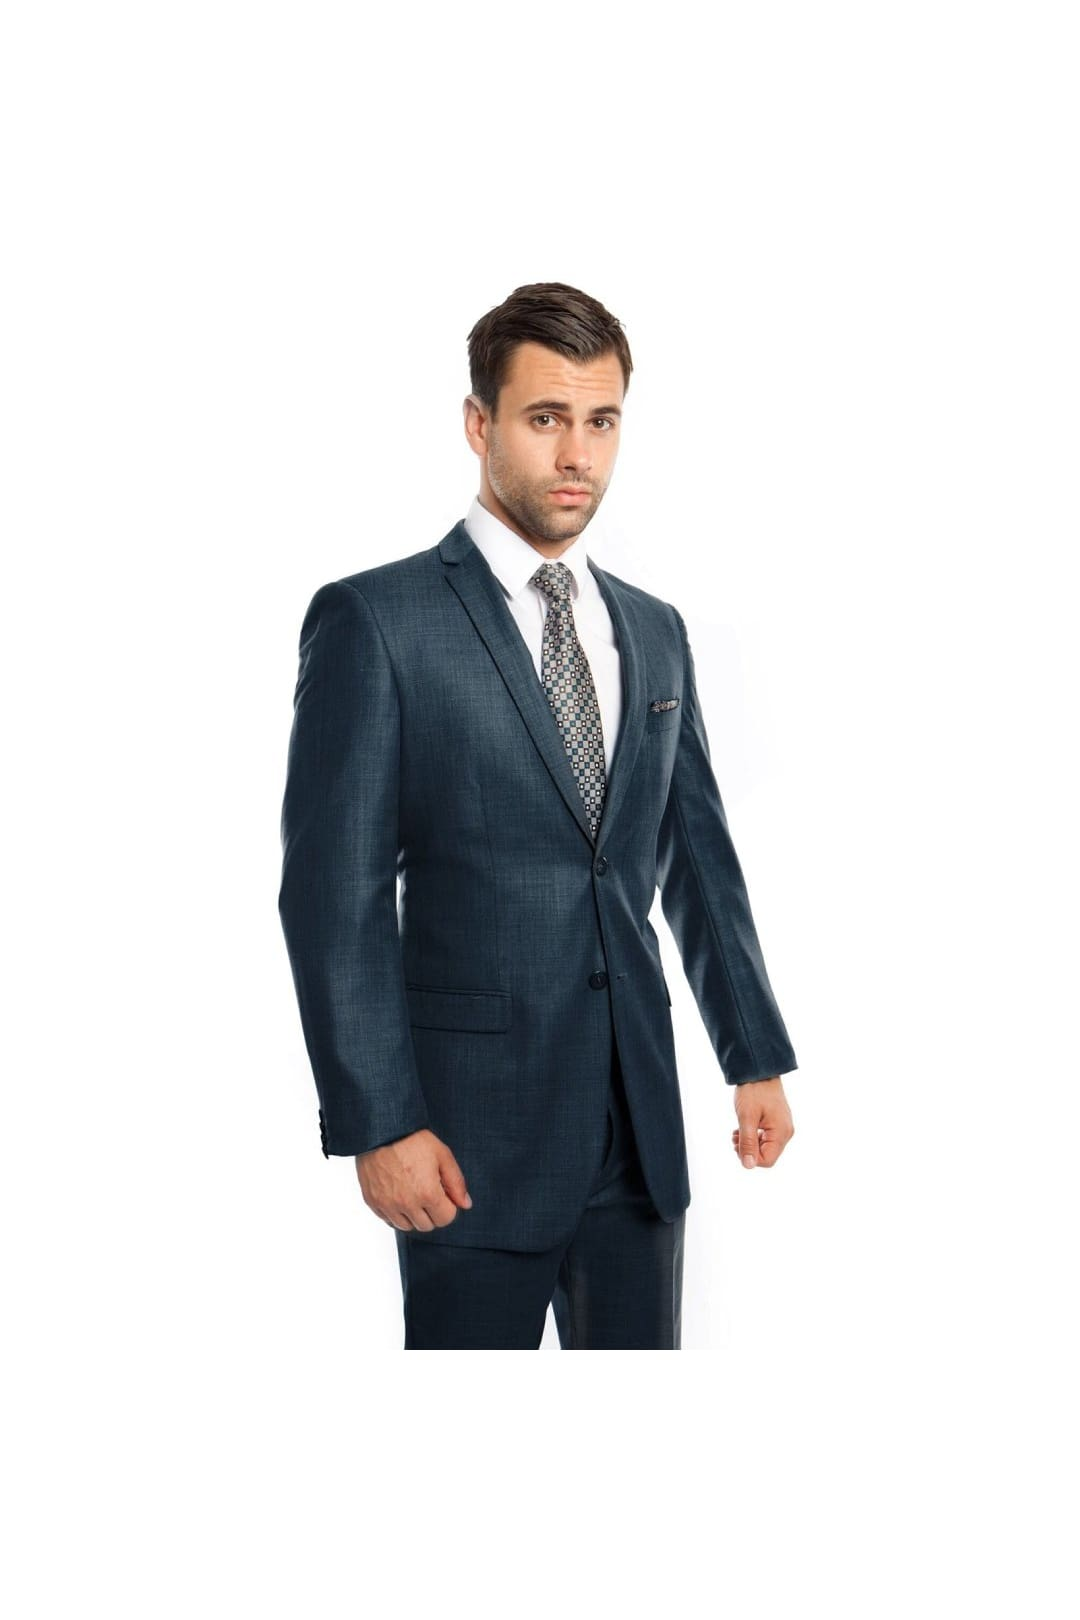 Mens Two Piece Ultra Slim Fit Sharkskin Suit - Mid Navy - 01 / US34S/W28 / EU44S/W38